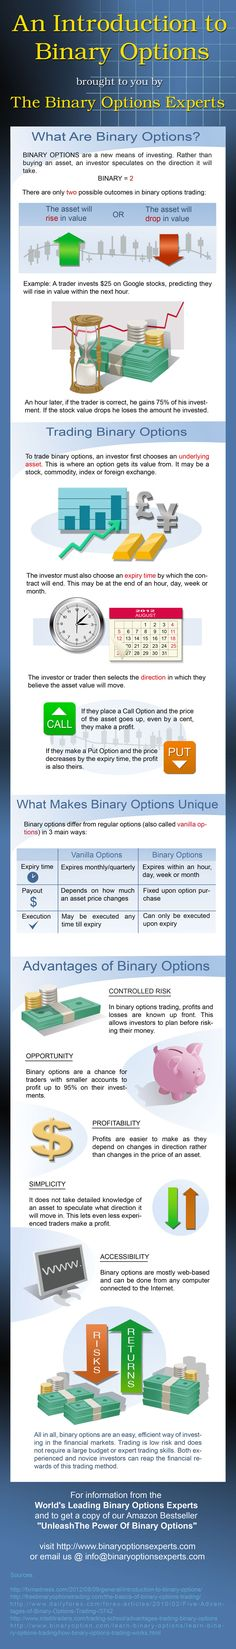 Binary options info graphic software falcons vs saints betting odds